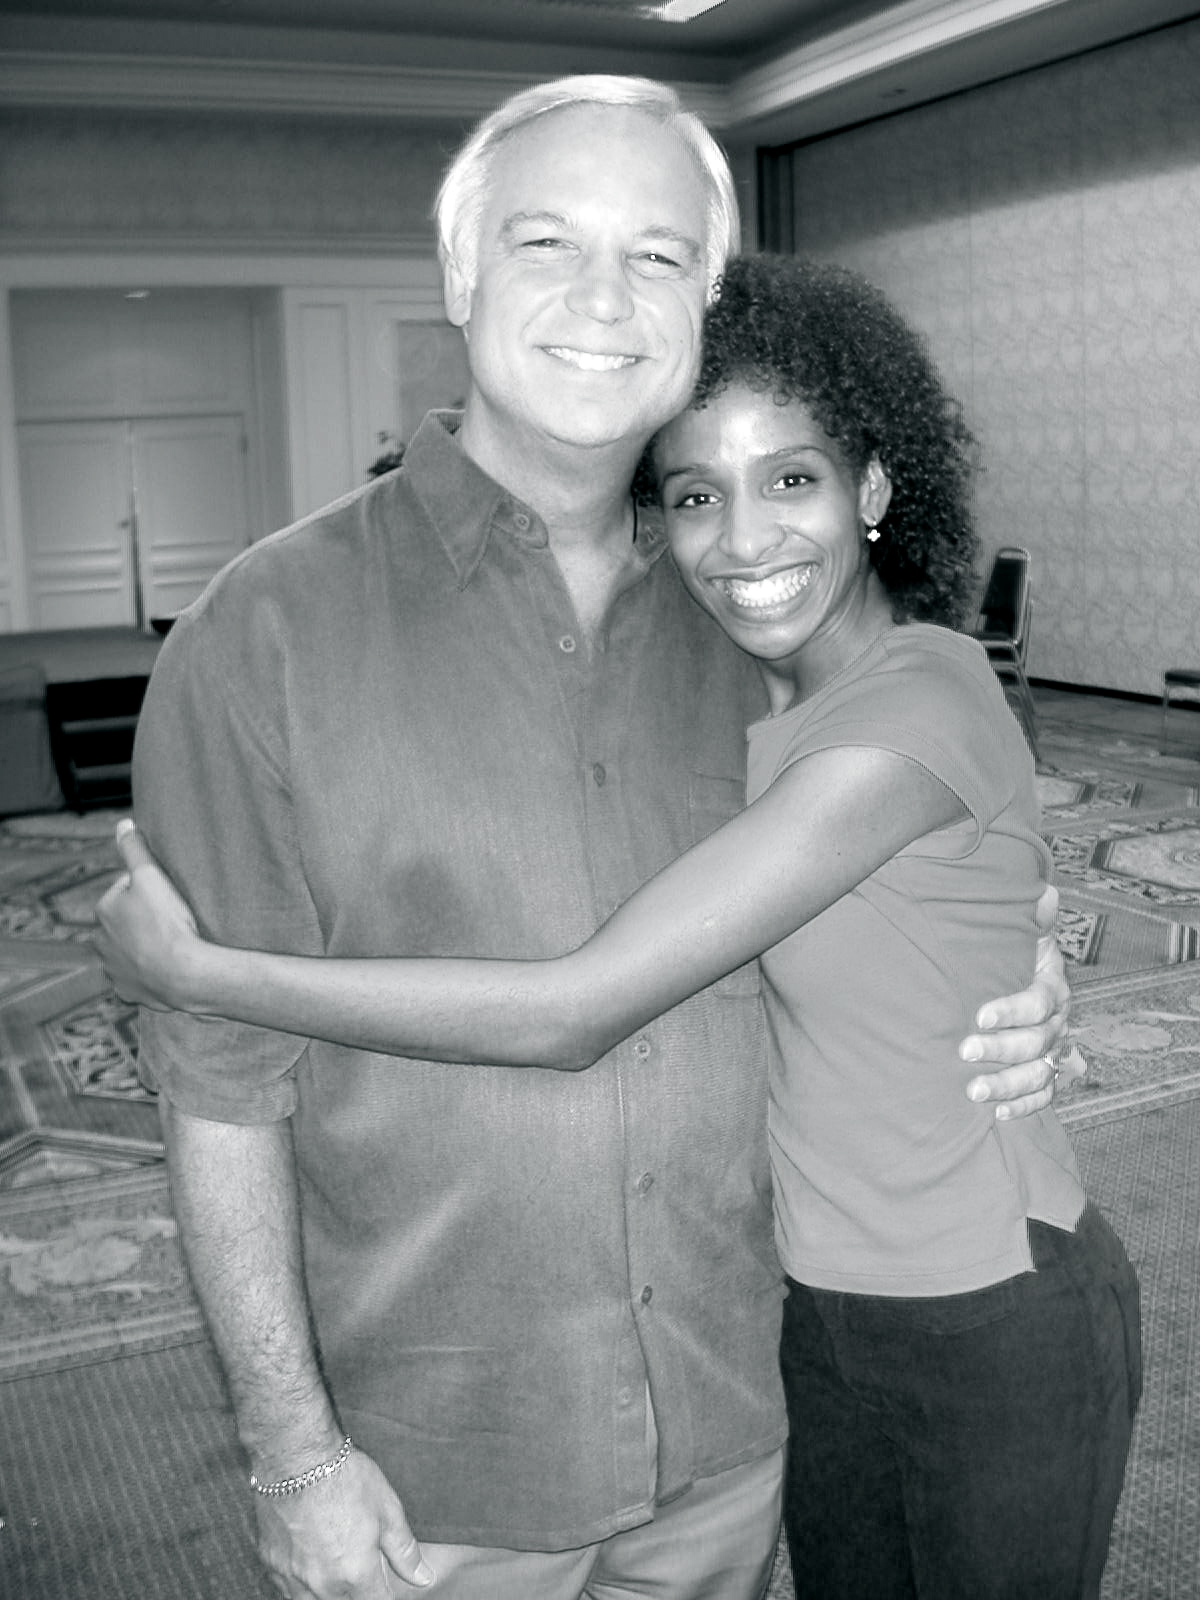 Venus with Jack Canfield